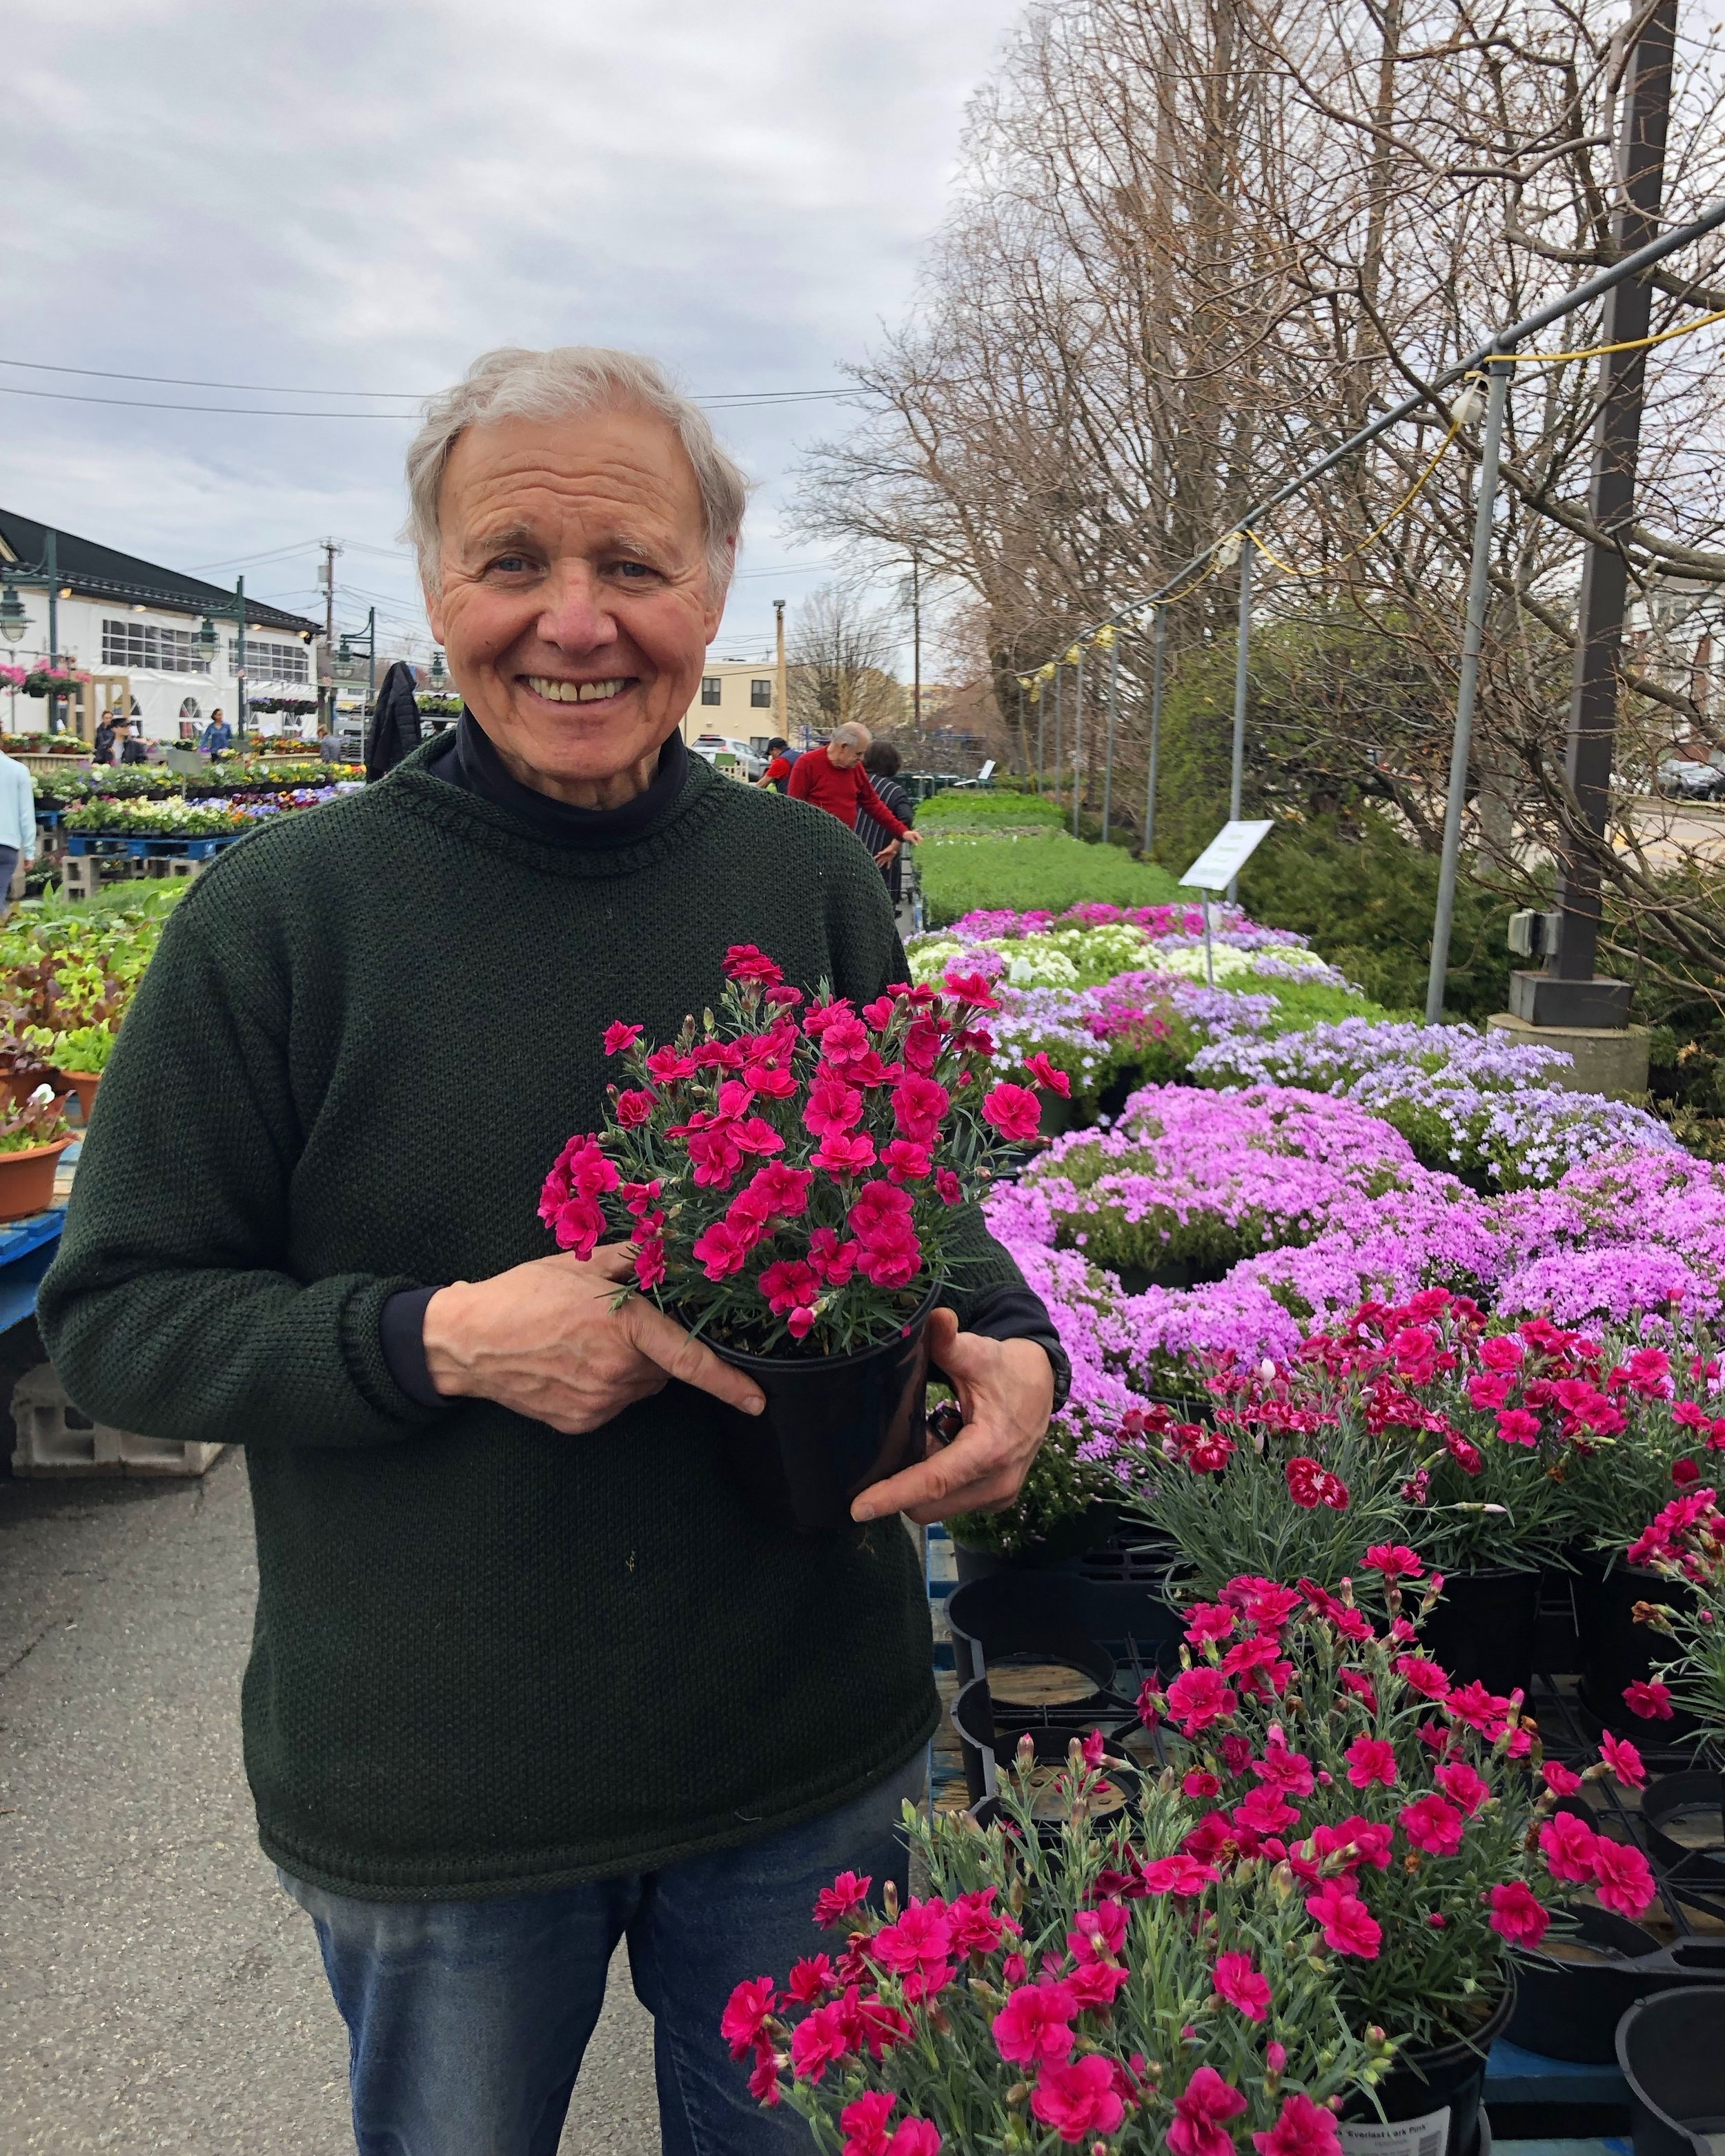 Tony Russo with the vibrant Dianthus plants. Check out this week's Tony's Tips on plants and herbs!